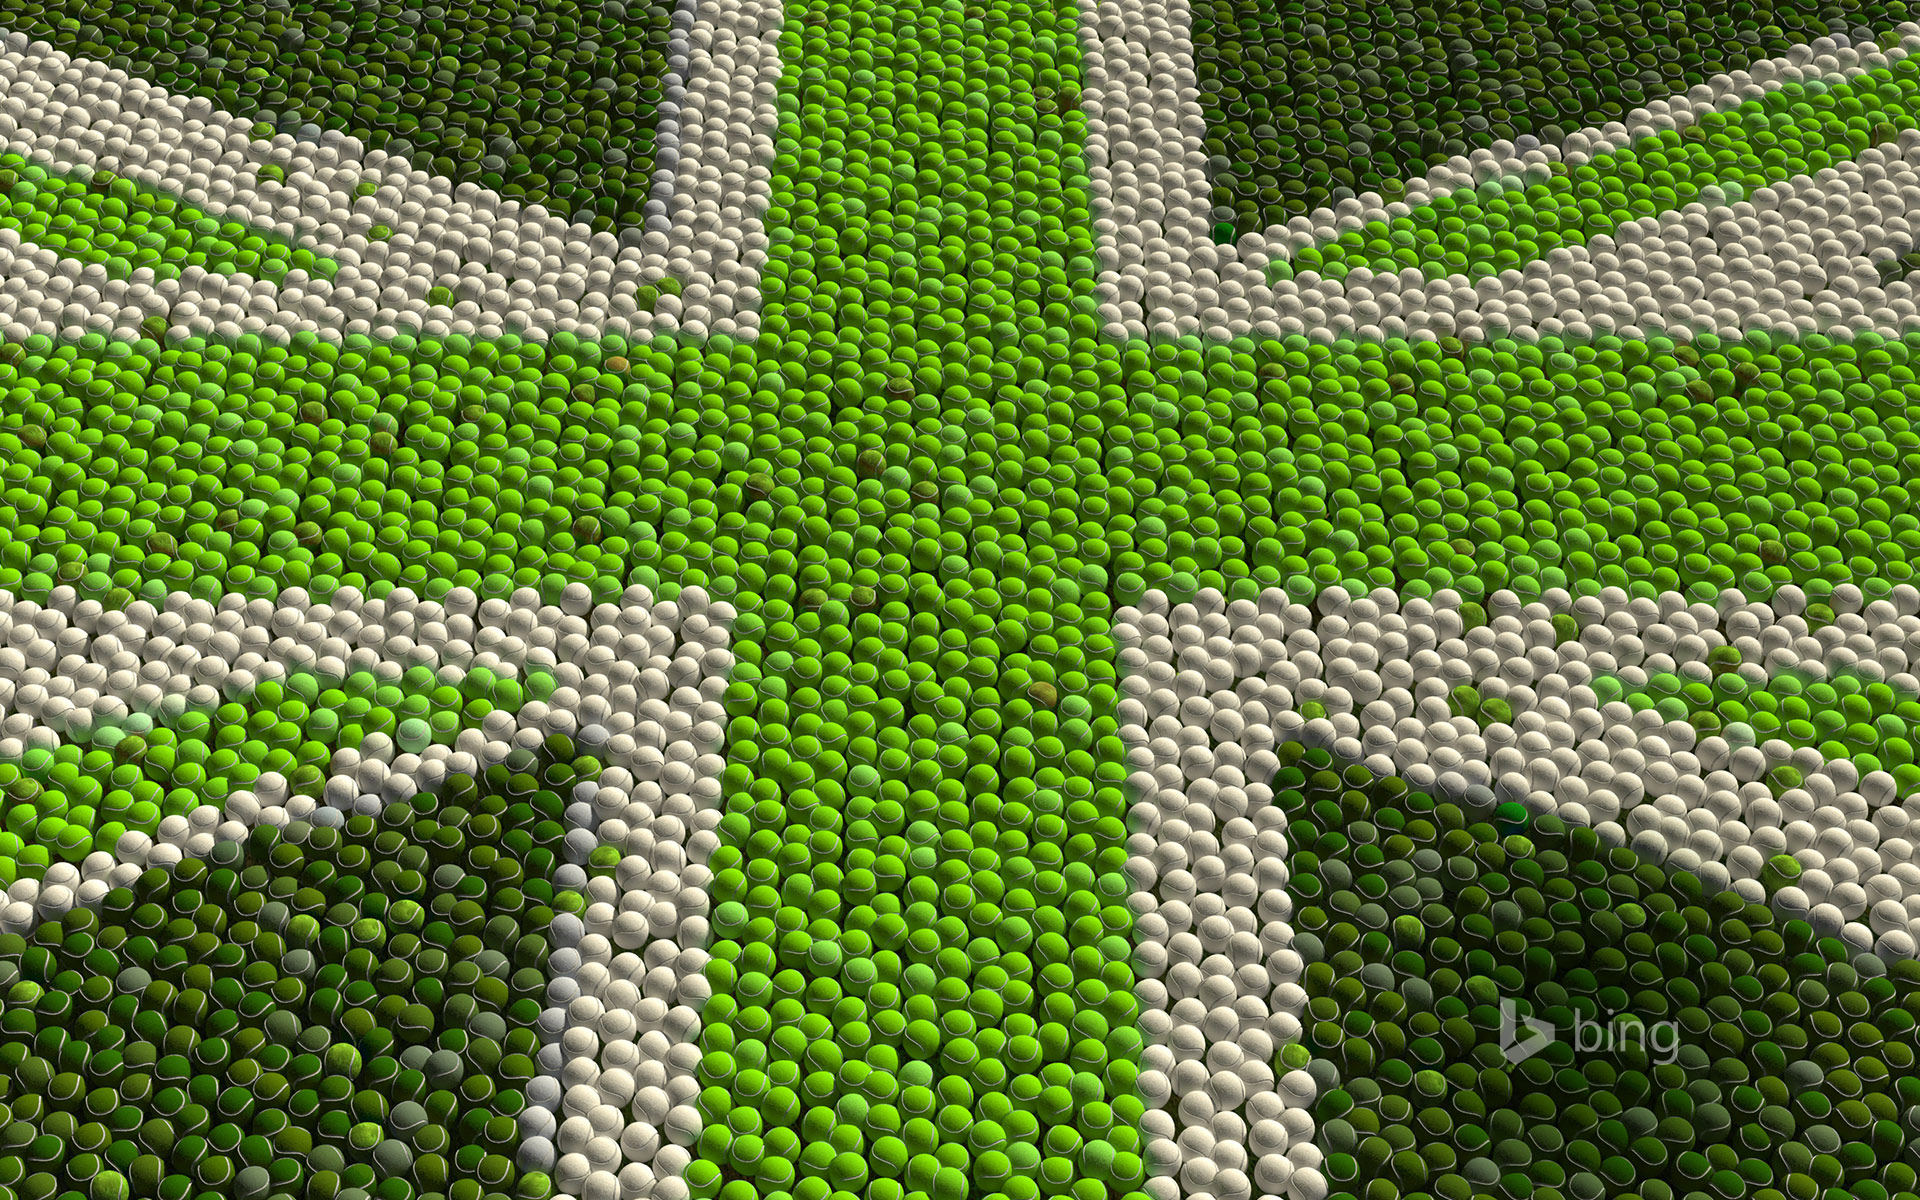 Great Britain Flag made up of green tennis balls